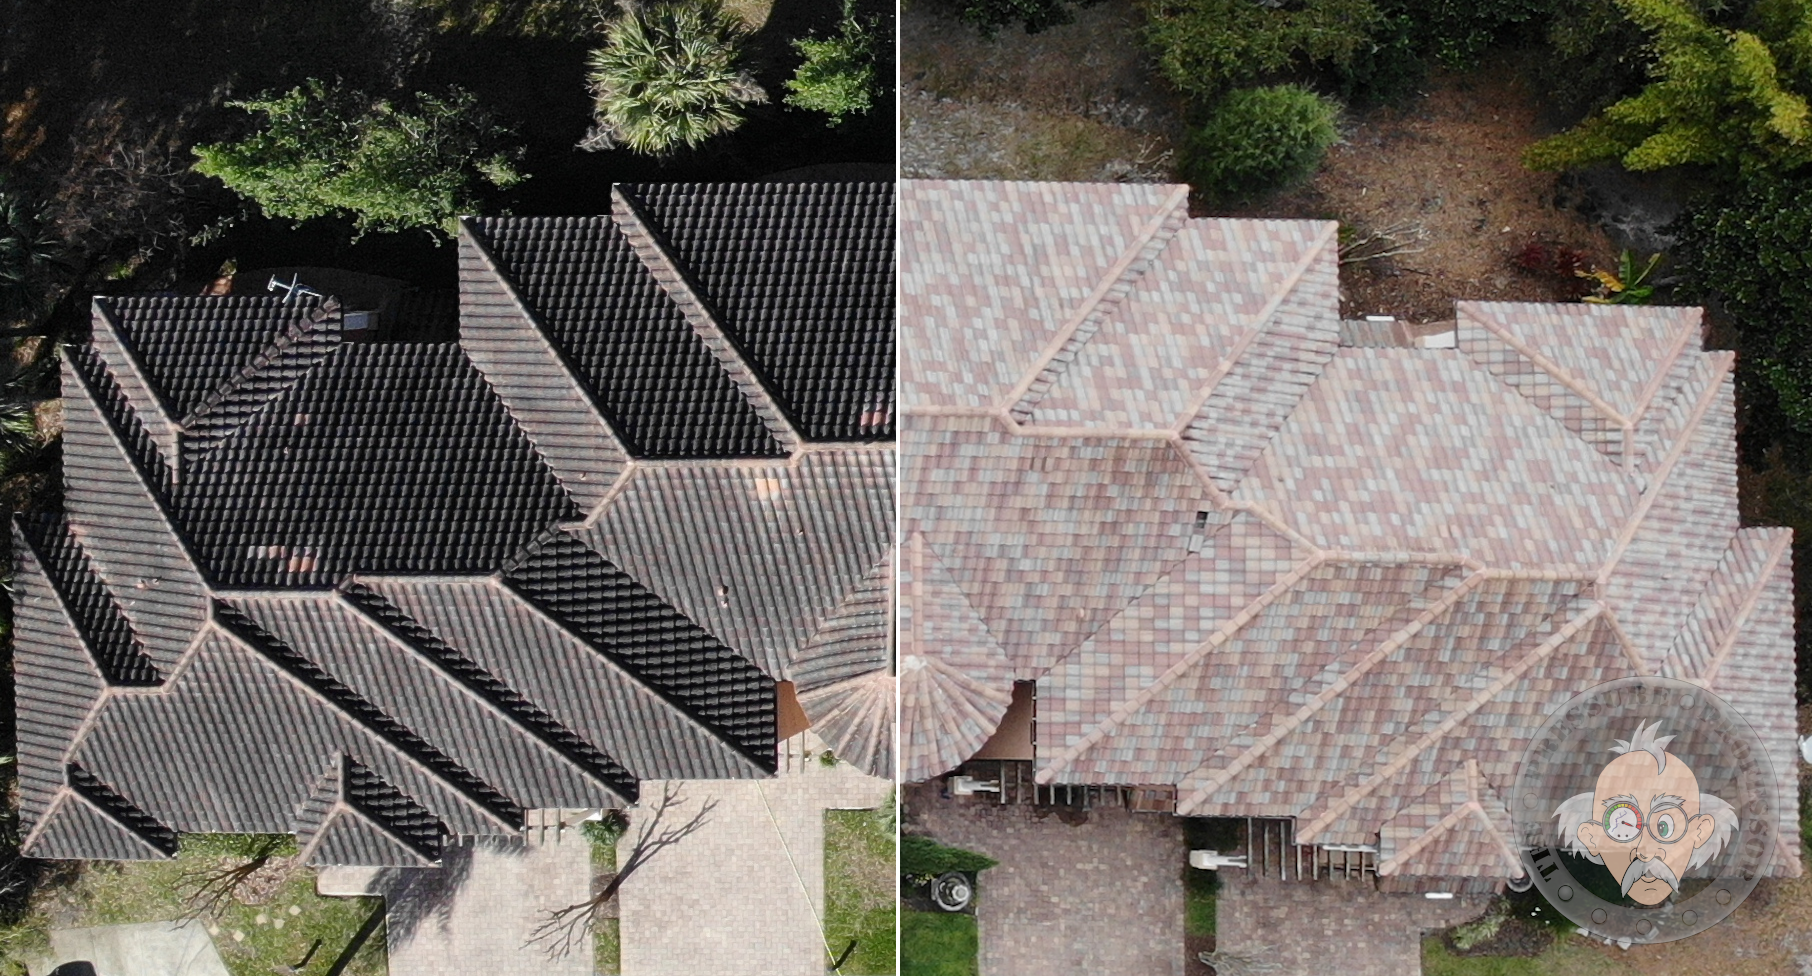 Safe low pressure roof cleaning for tile, shingle, and metal roofs